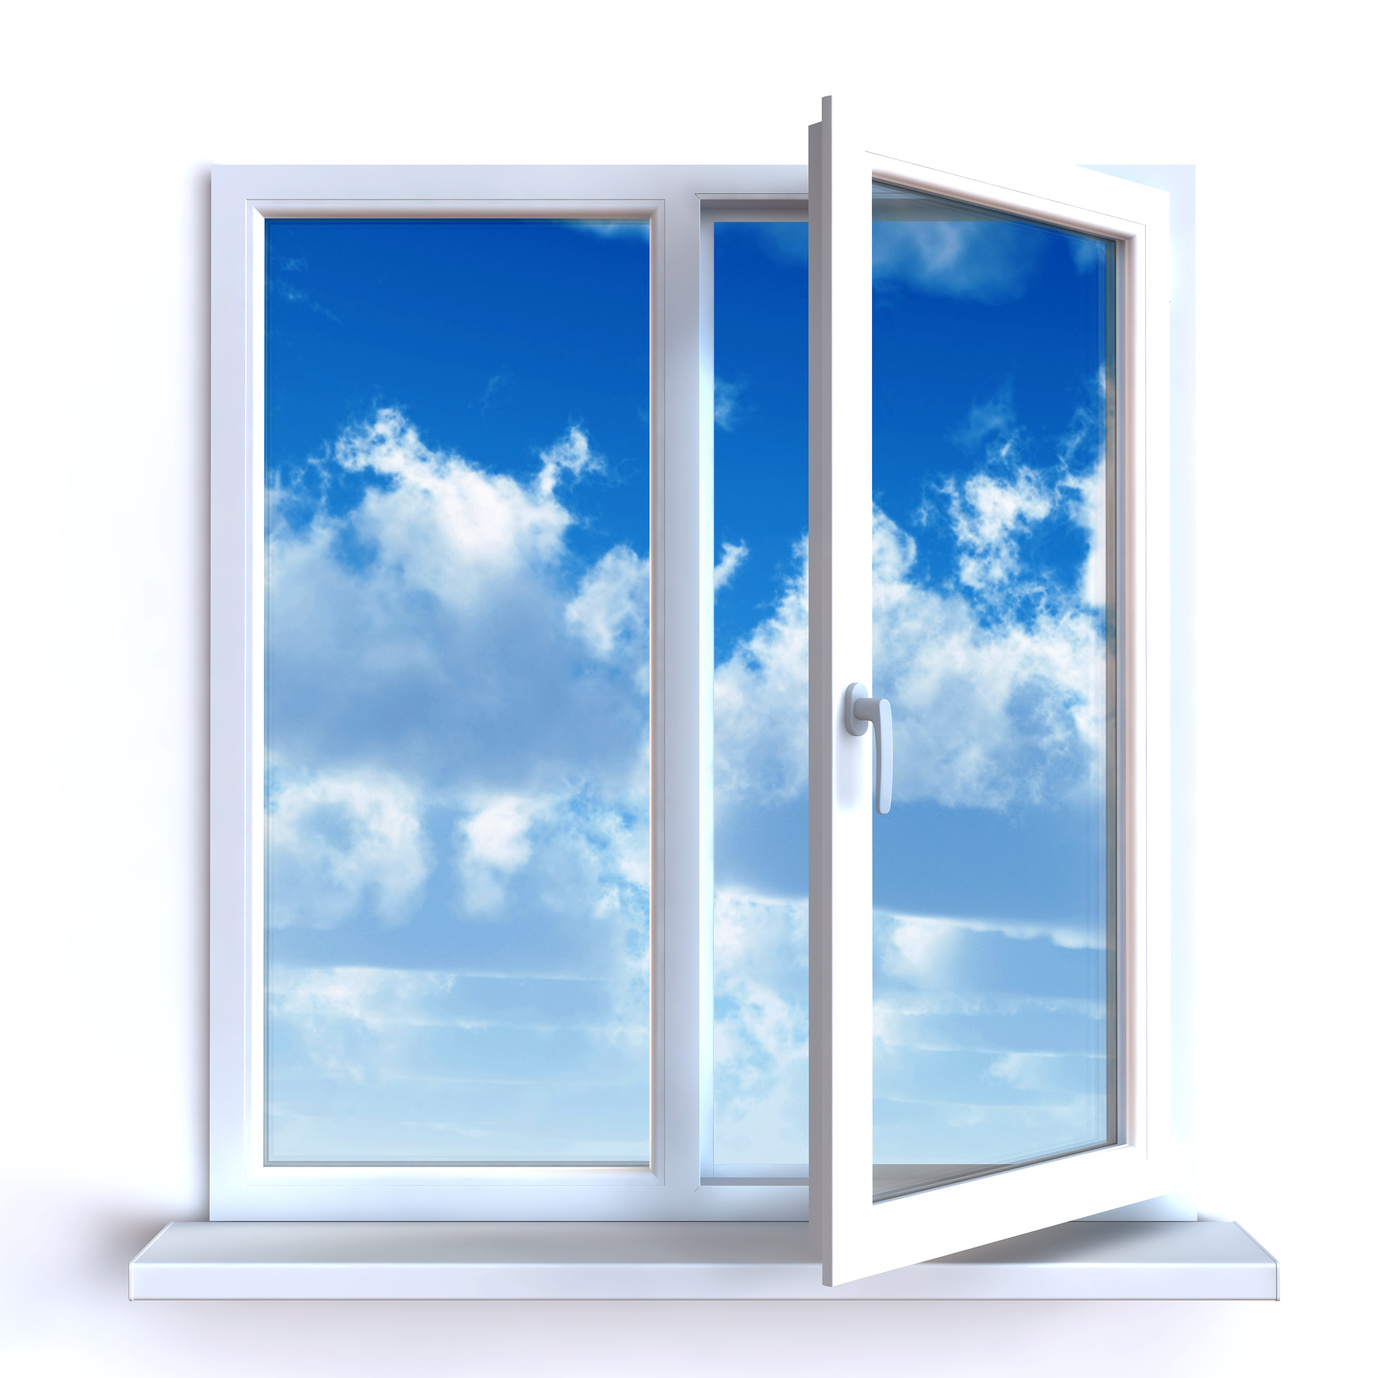 Open window and the cloudy sky